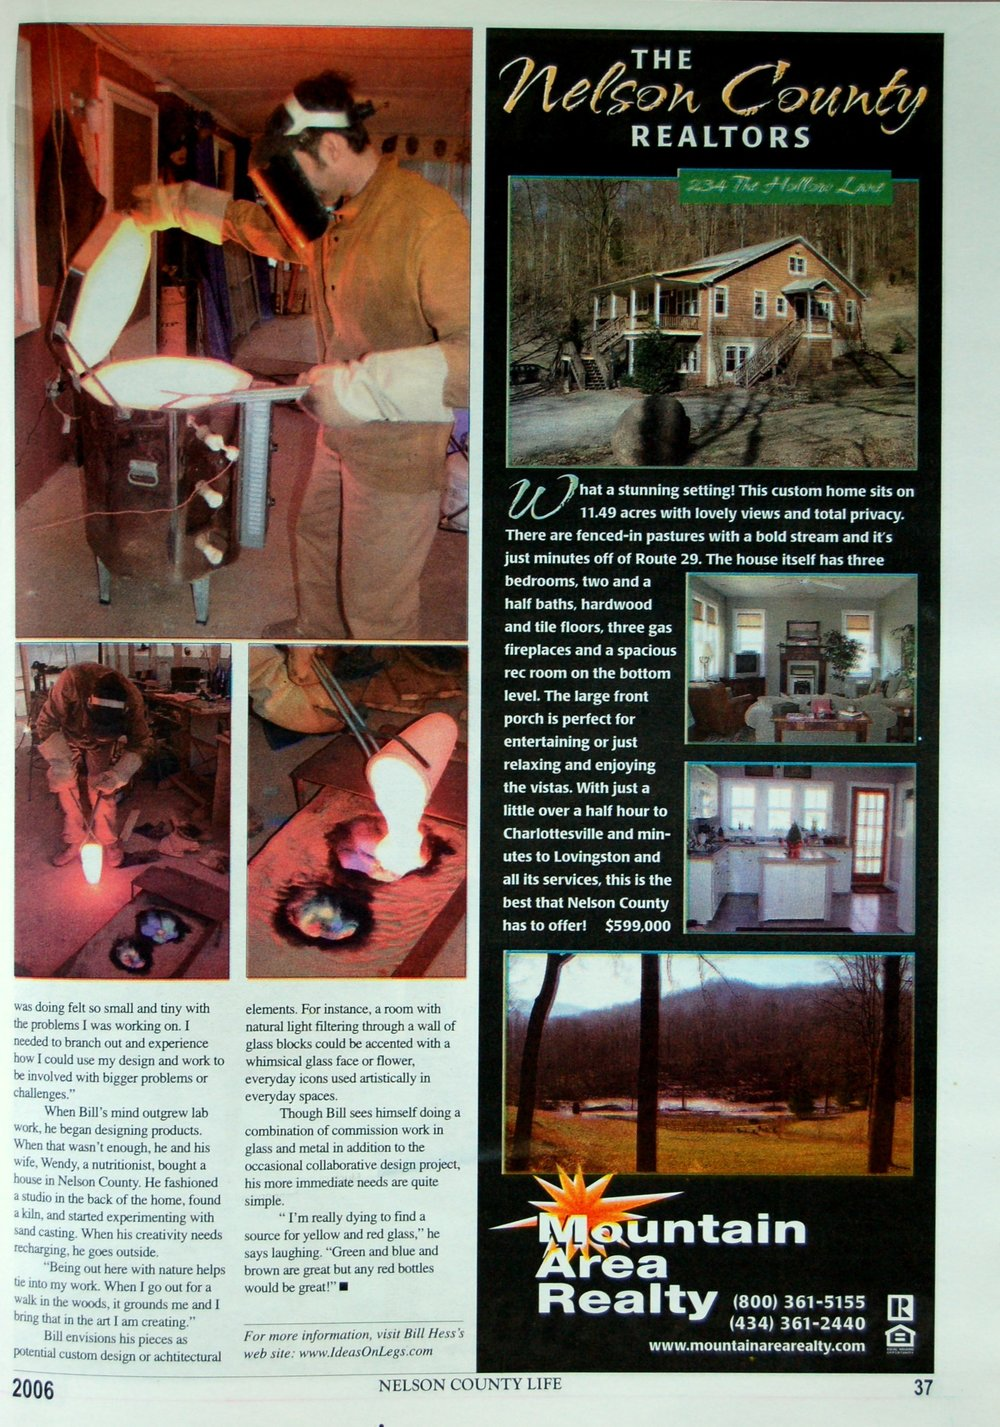 Nelson County Life Page 37.JPG.jpg